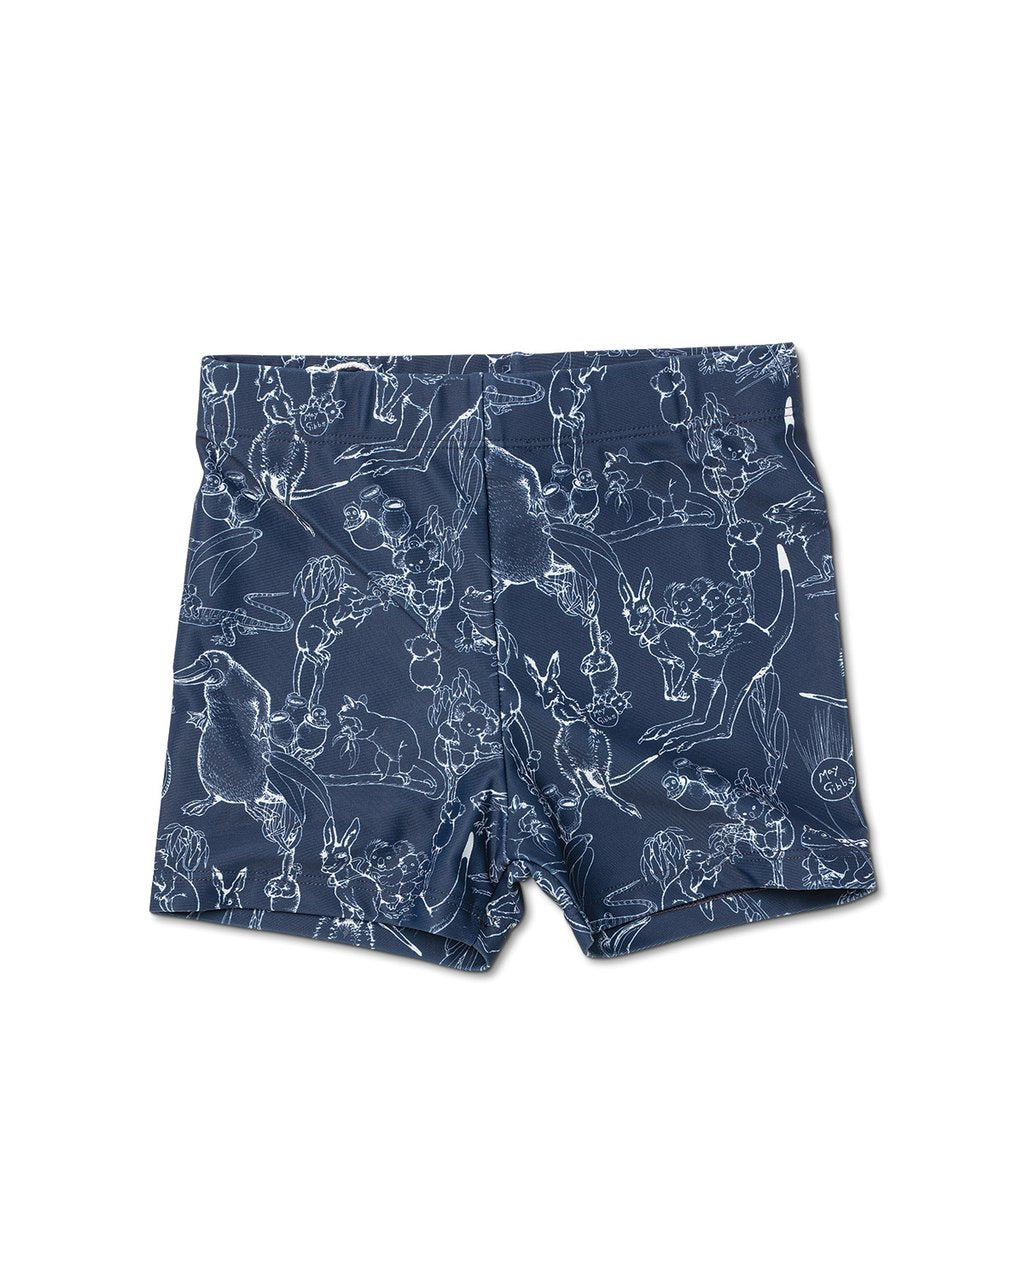 Walnut May Gibbs Murray Swim Trunk